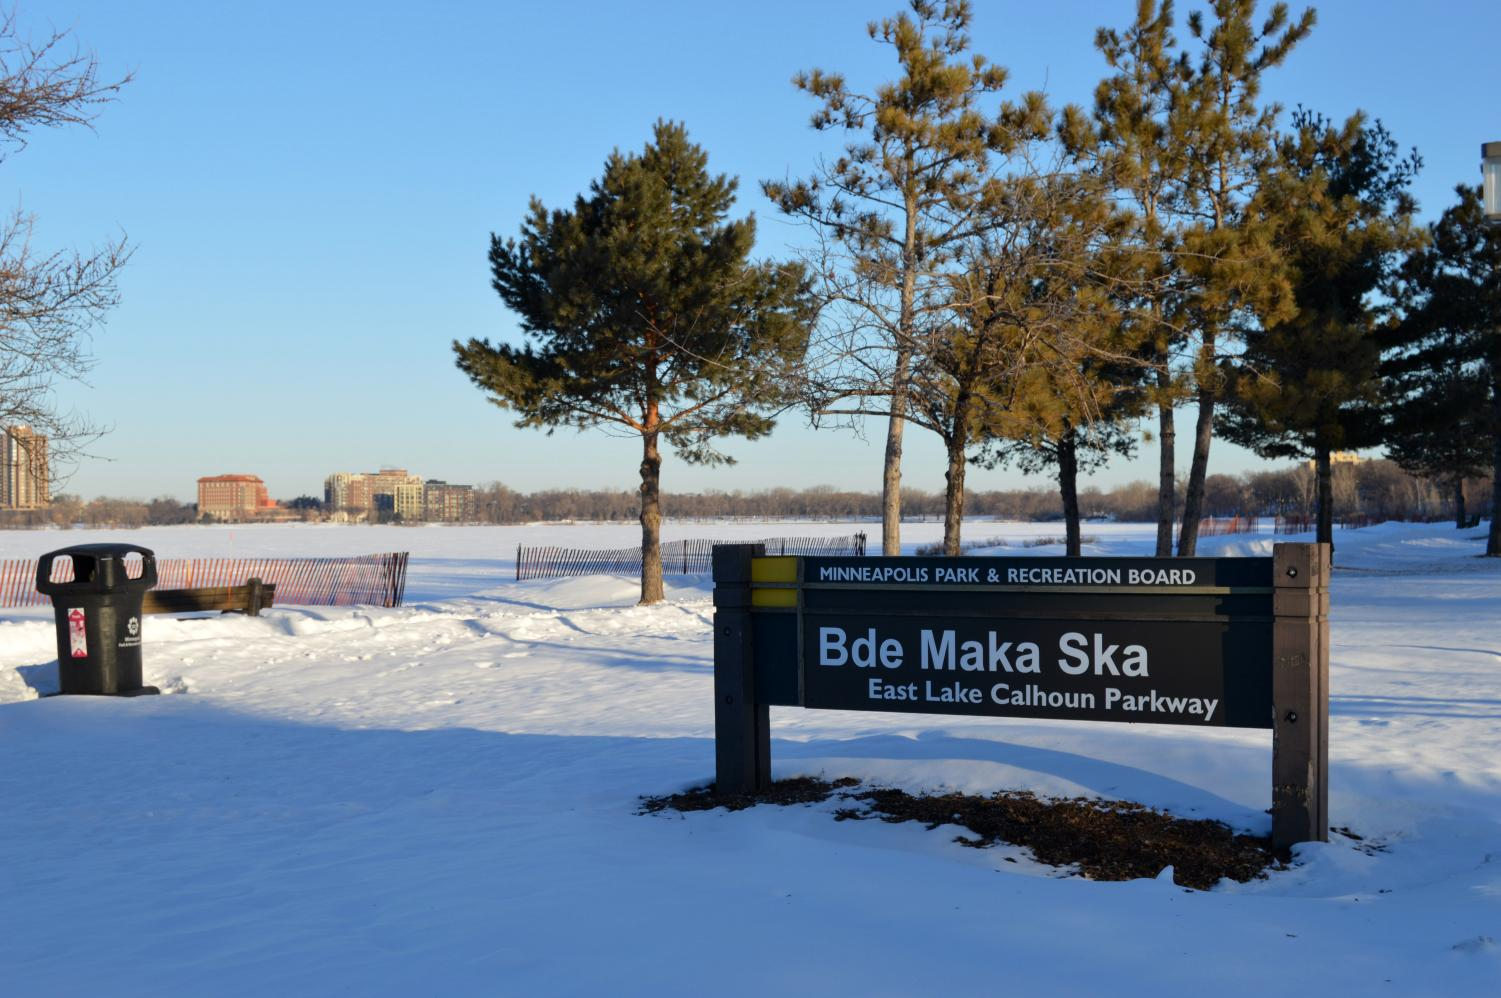 Updated signs replace former Lake Calhoun signs and advocate for Native American heritage. New signs were placed Jan. 29.